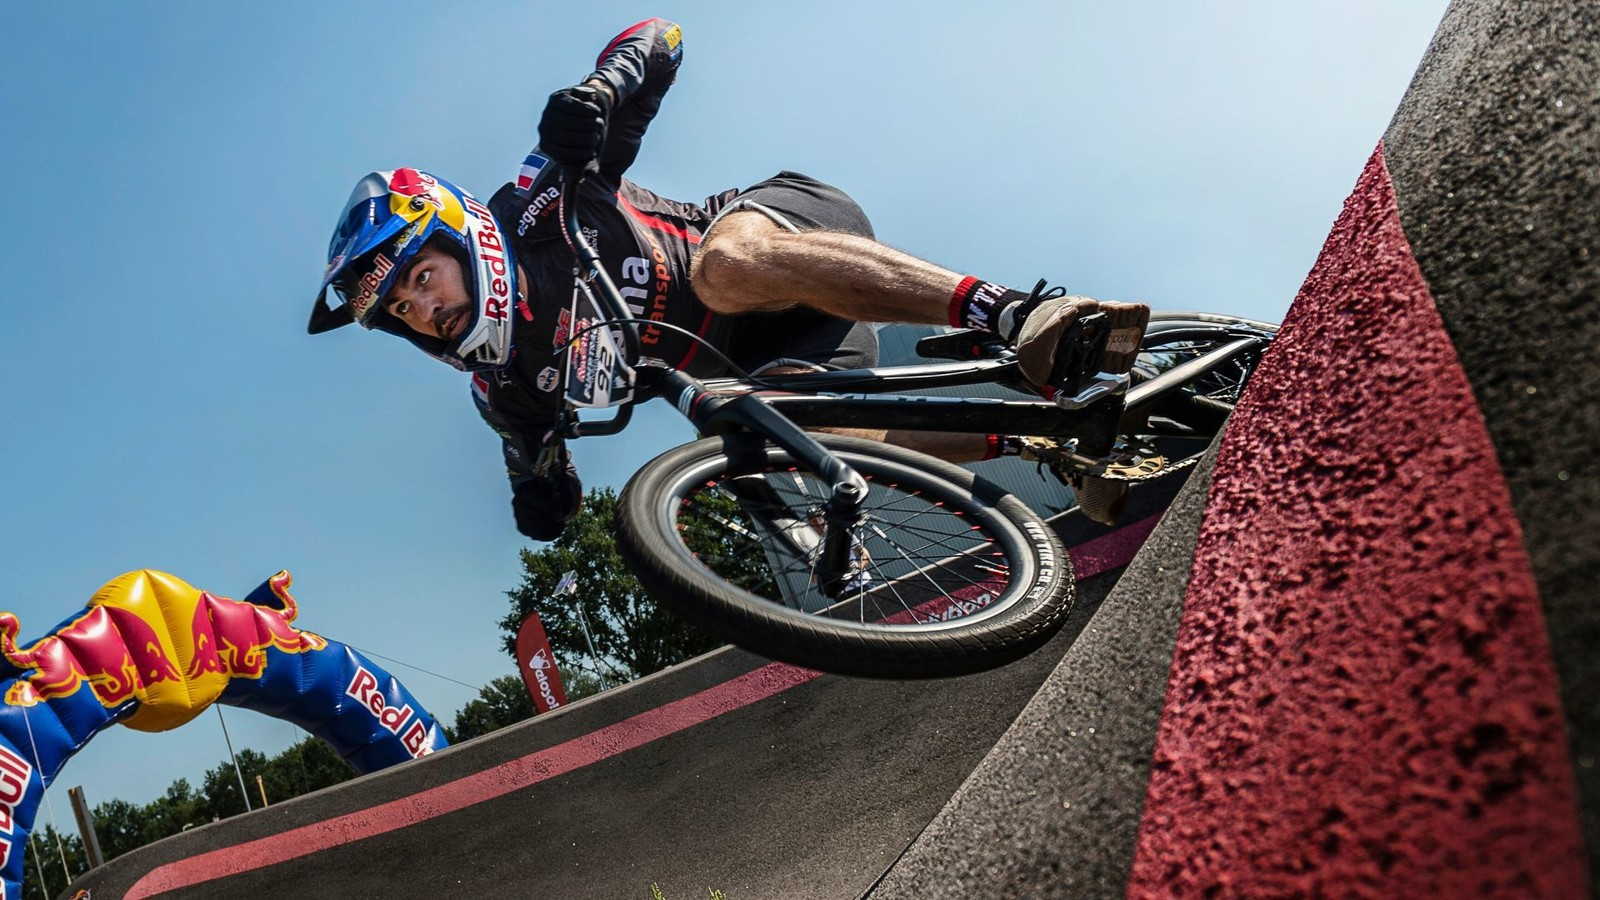 Rainbow Stripes on Offer at Pump Track World Championships